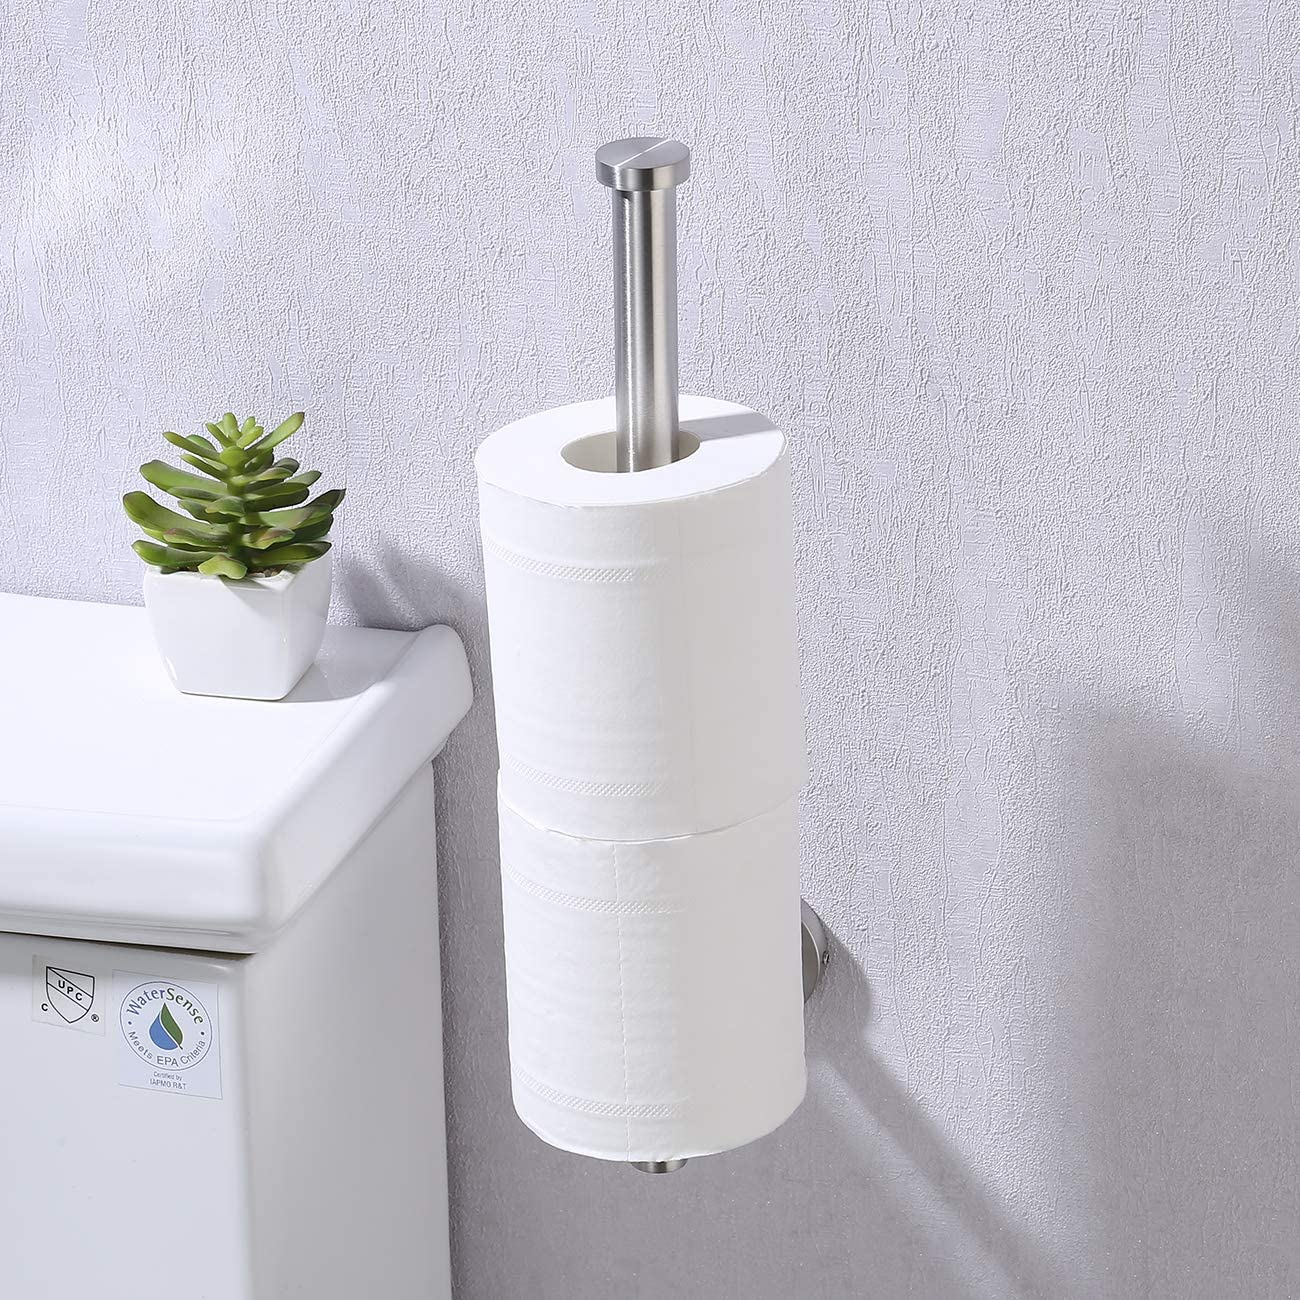 Kes Paper Towel Holder for Kitchen /& Bathroom 11 Inch SUS 304 Stainless Steel Paper Towel Holder Dispenser Wall Mount//Under Cabinet Brushed Nickel A2175S30-2